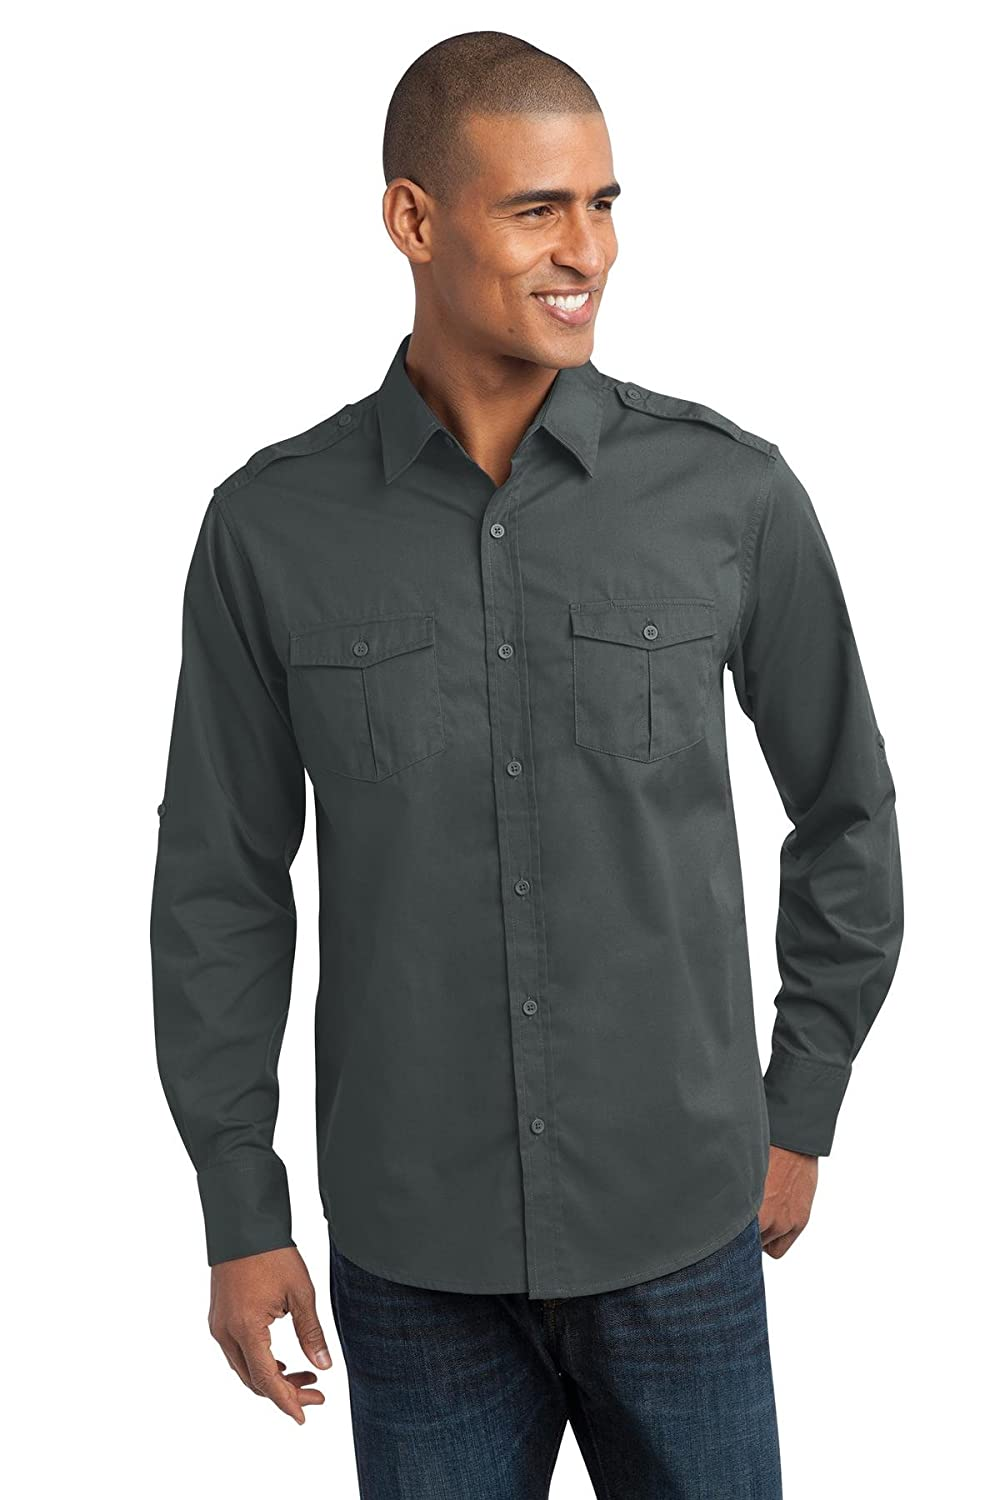 Port Authority Mens Stain-Resistant Roll Sleeve Shirt